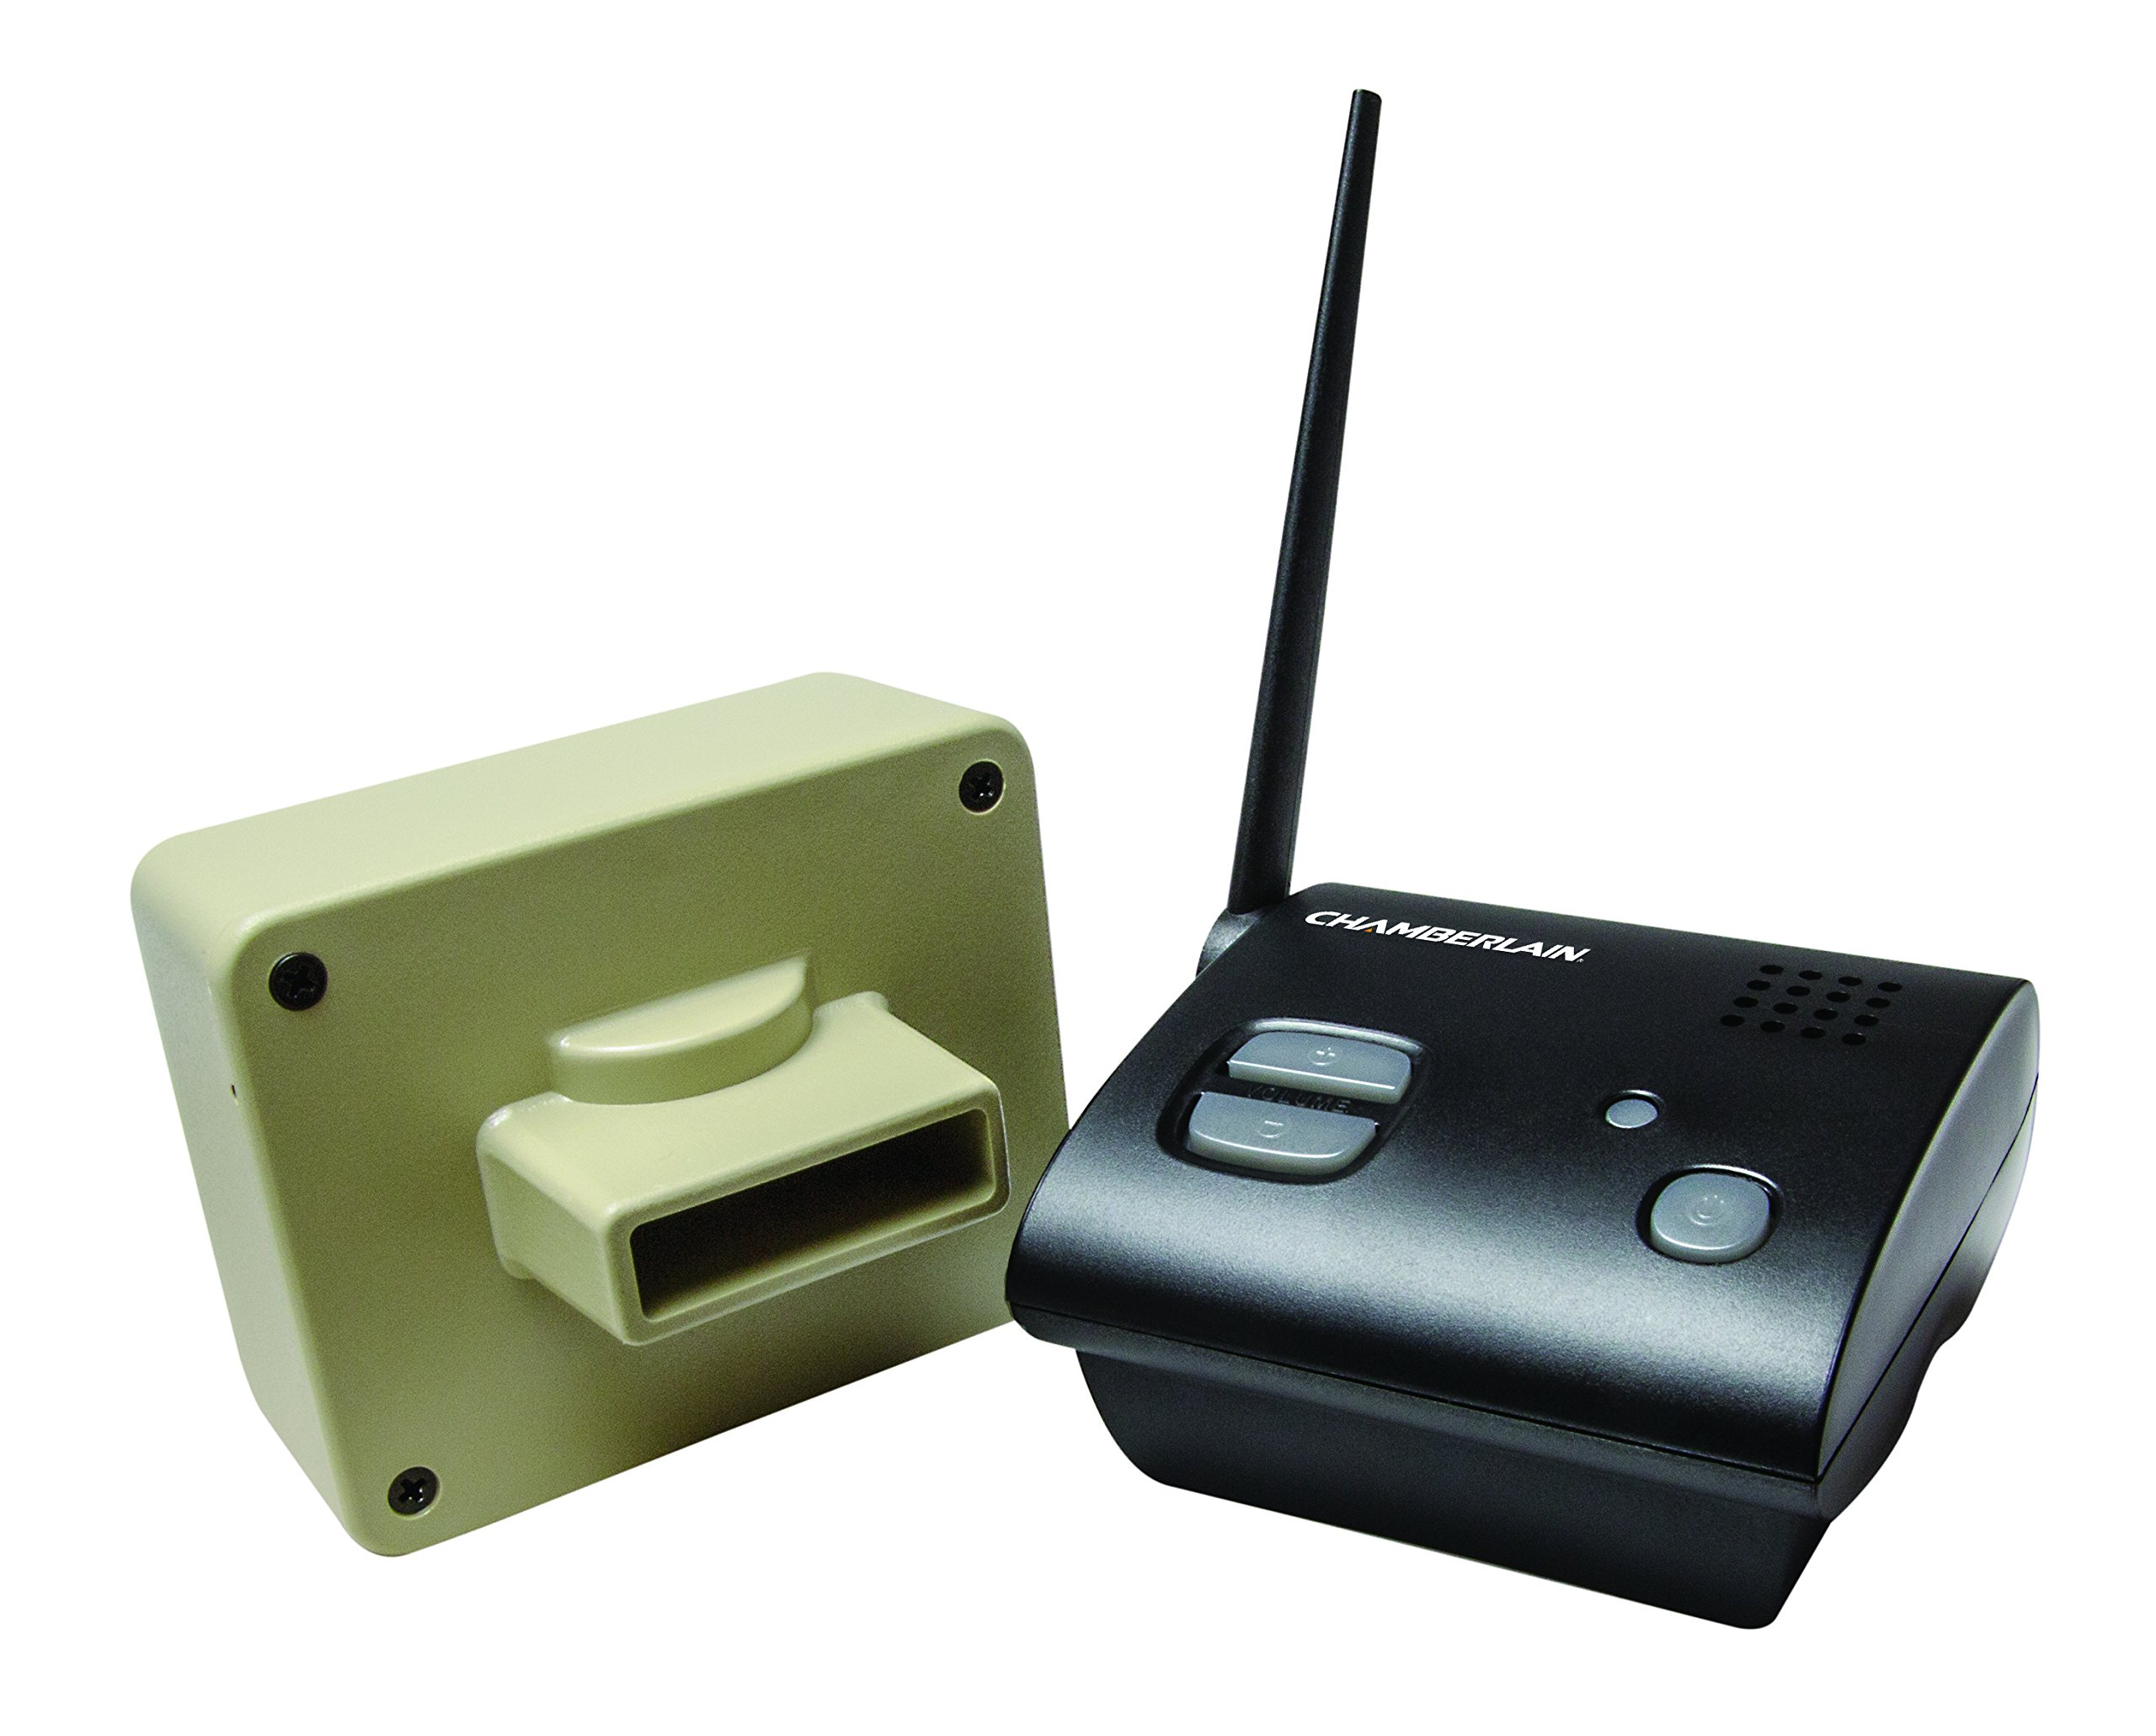 Chamberlain CWA2000 Weatherproof Outdoor/Driveway Wireless Motion Alarm and Alert System, Includes 1 Battery/AC Powered Base Receiver and 1 CWPIR Sensor, Additional CWPIR Sensors Sold Separately